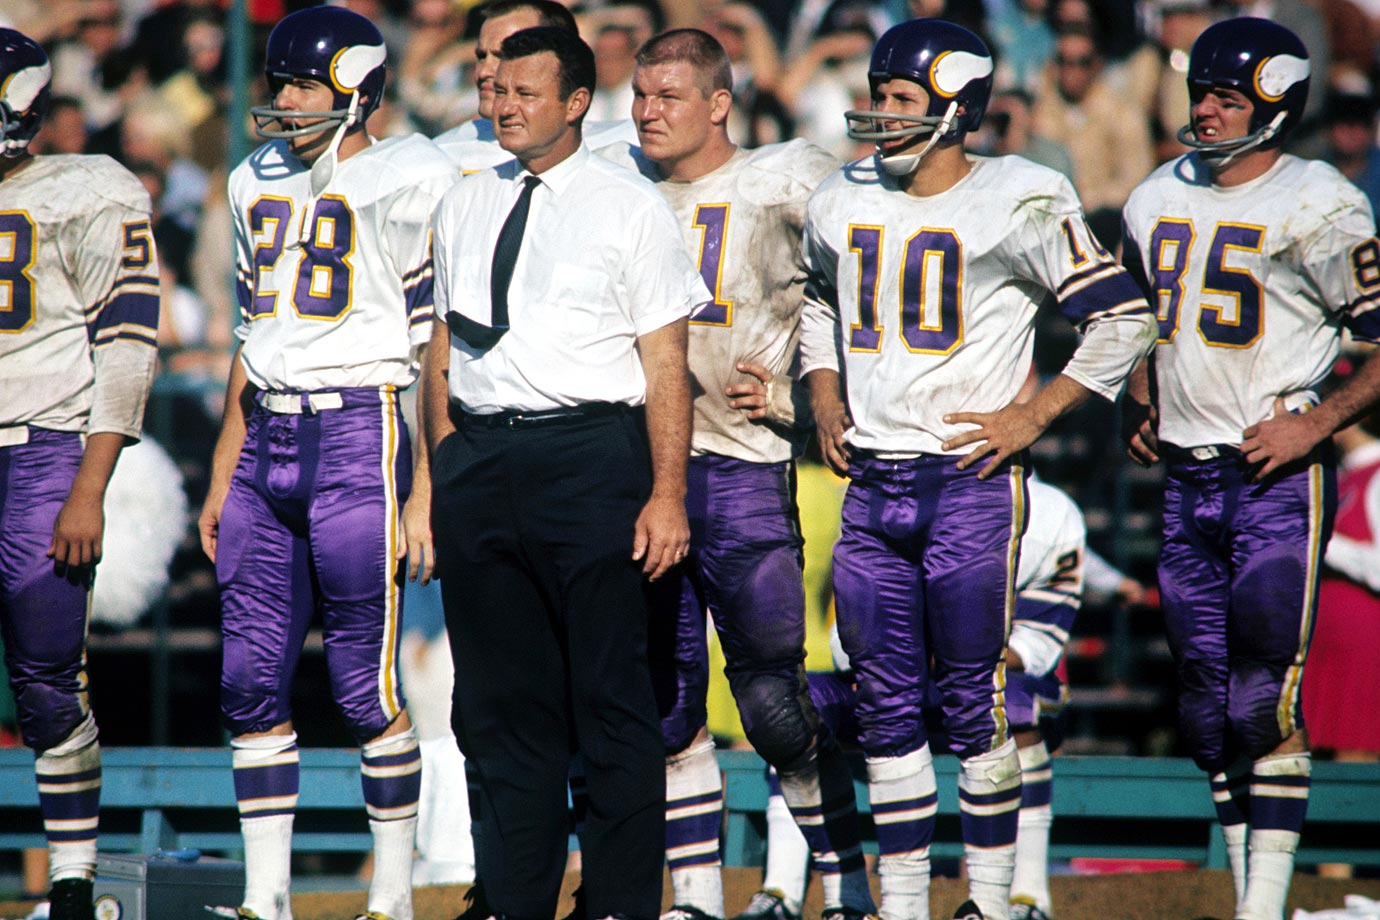 with Vikings head coach Norm Van Brocklin